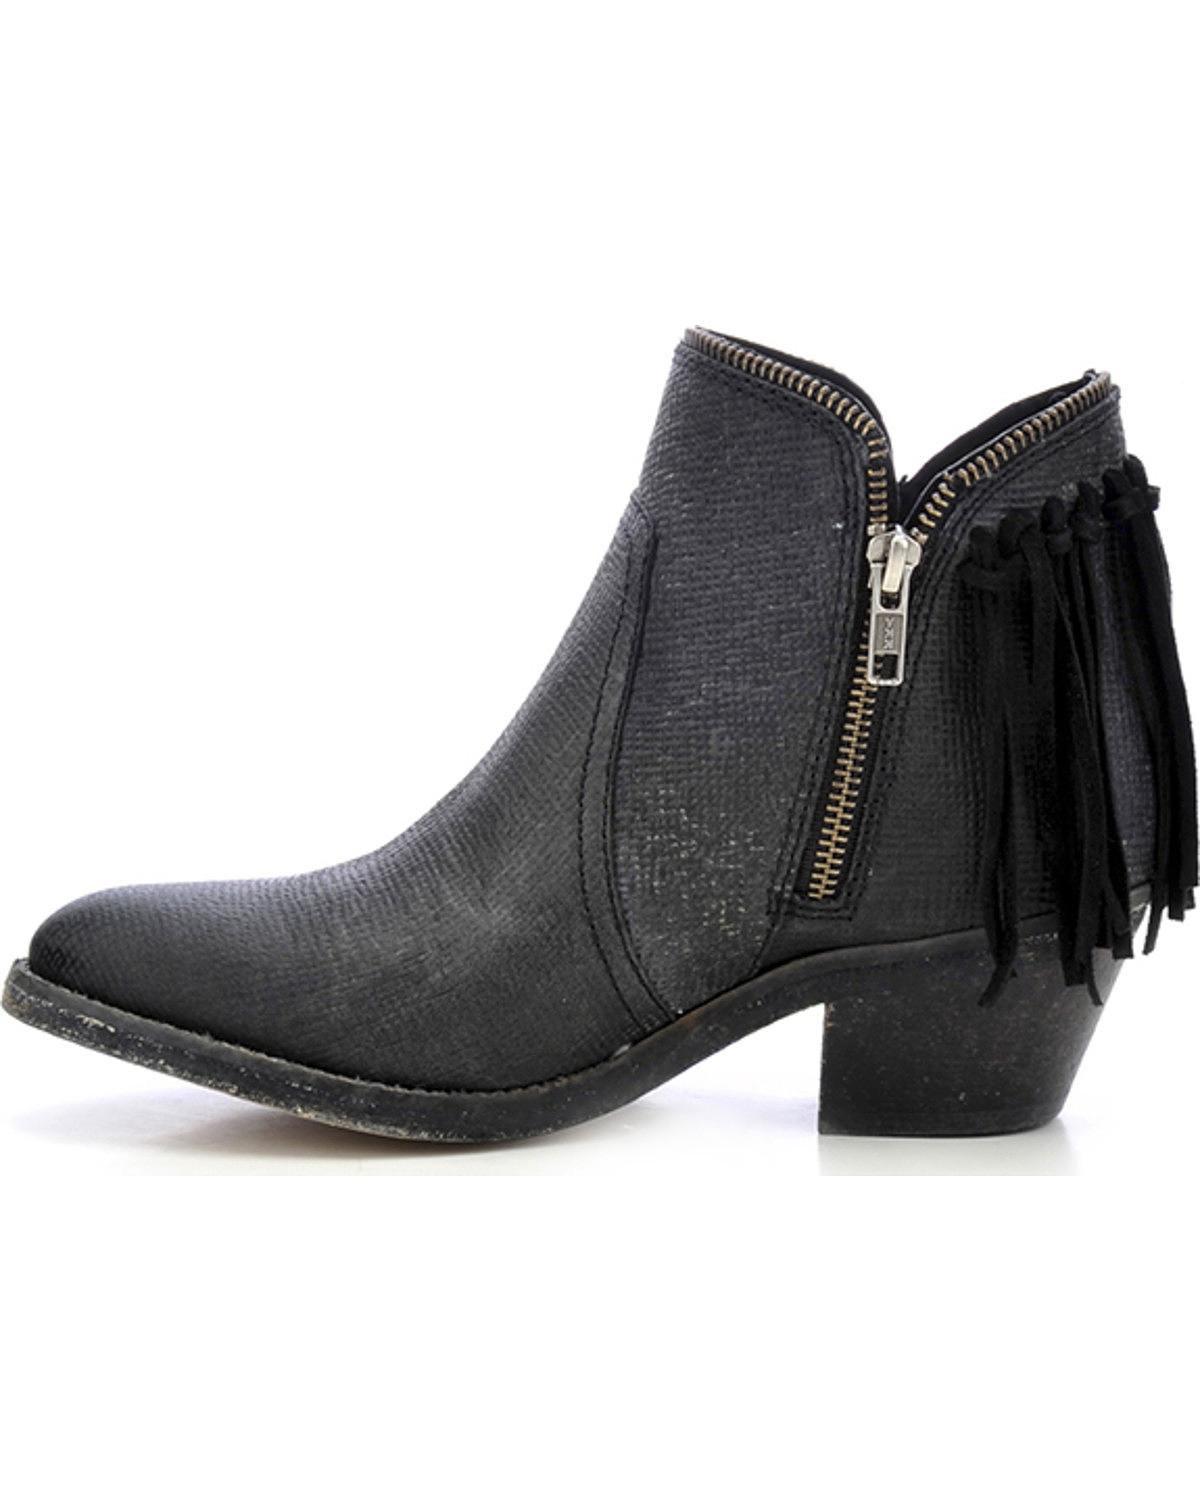 Circle Round G Fringe Zip Booties Round Circle Toe P5123 0d5946